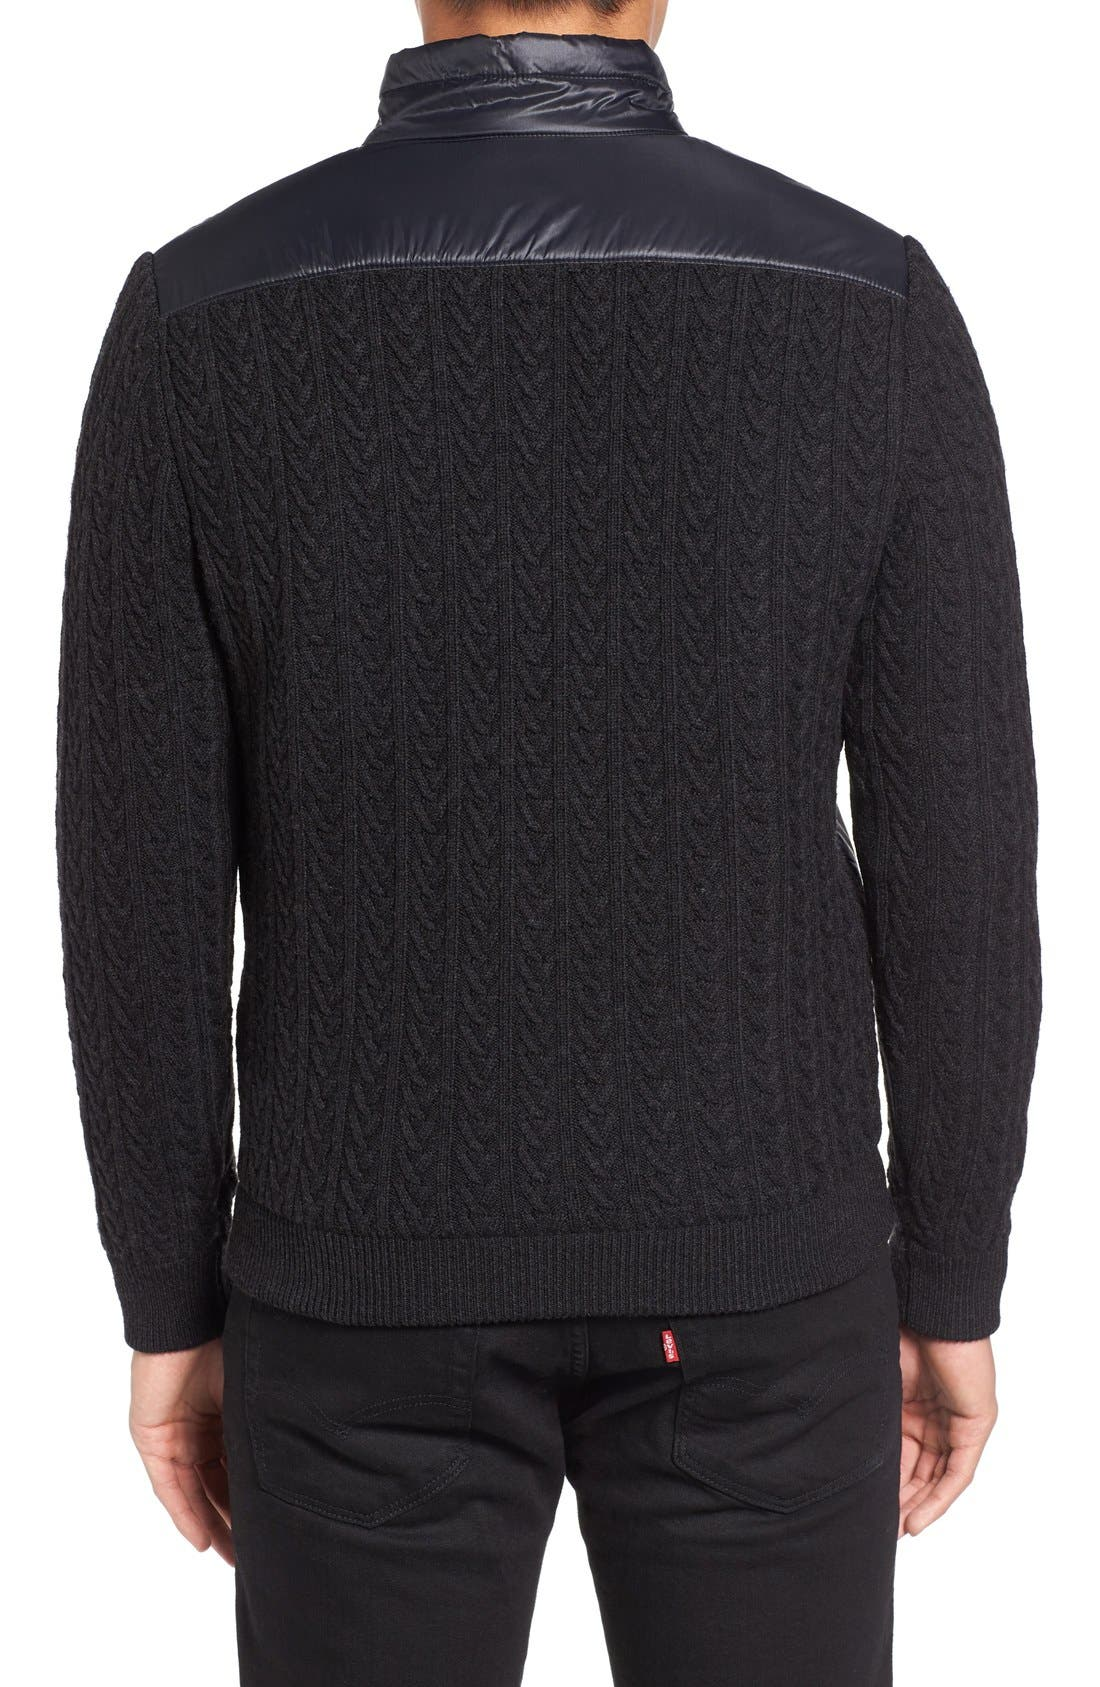 'Beacon' Trim Fit Quilted Cable Knit Zip Sweater,                             Alternate thumbnail 2, color,                             001